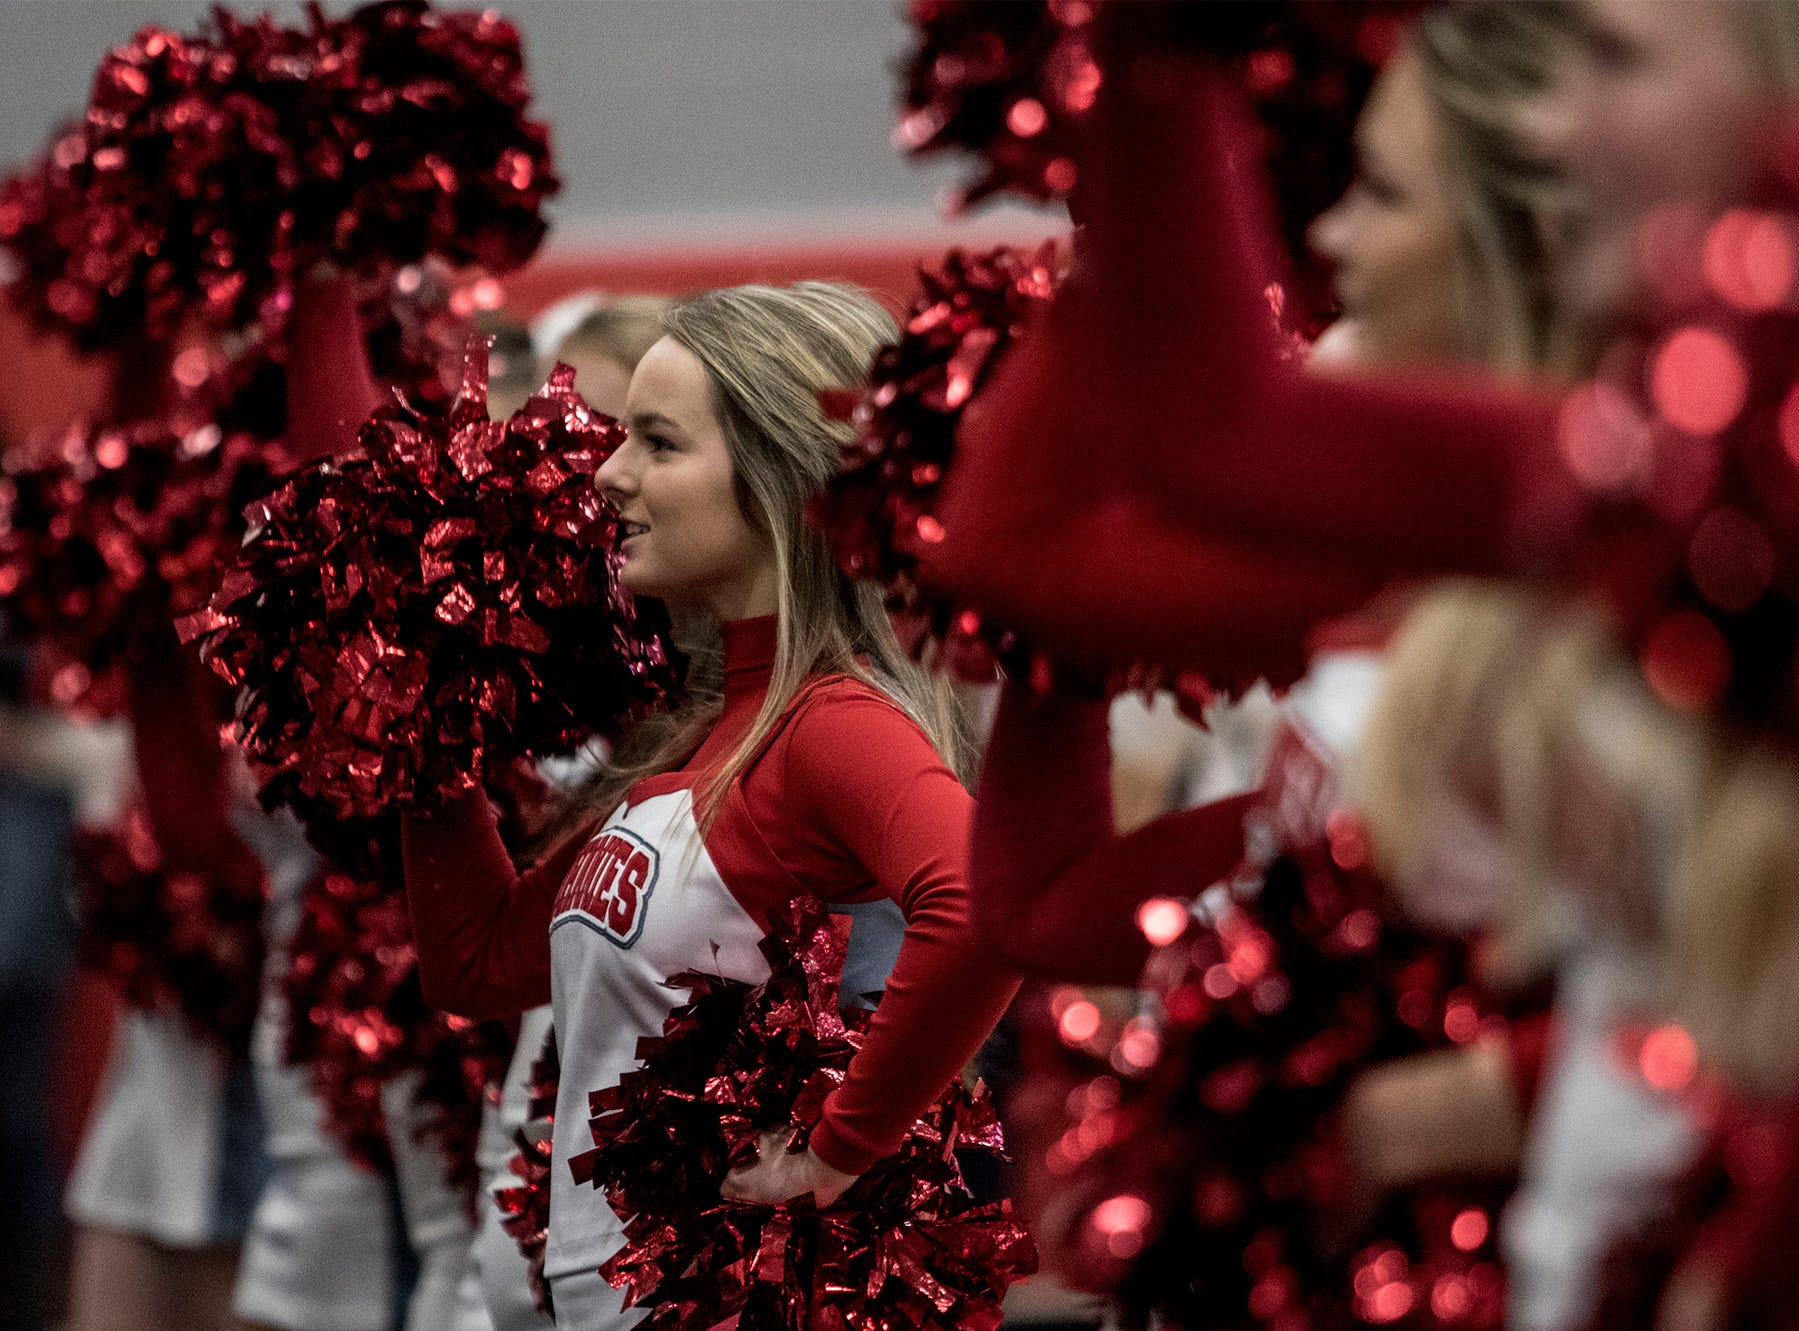 Cheerleaders perform during a pep rally Friday morning ahead of the teams' game state championship game Saturday. Johnstown will take on Orville at 3 pm Canton.